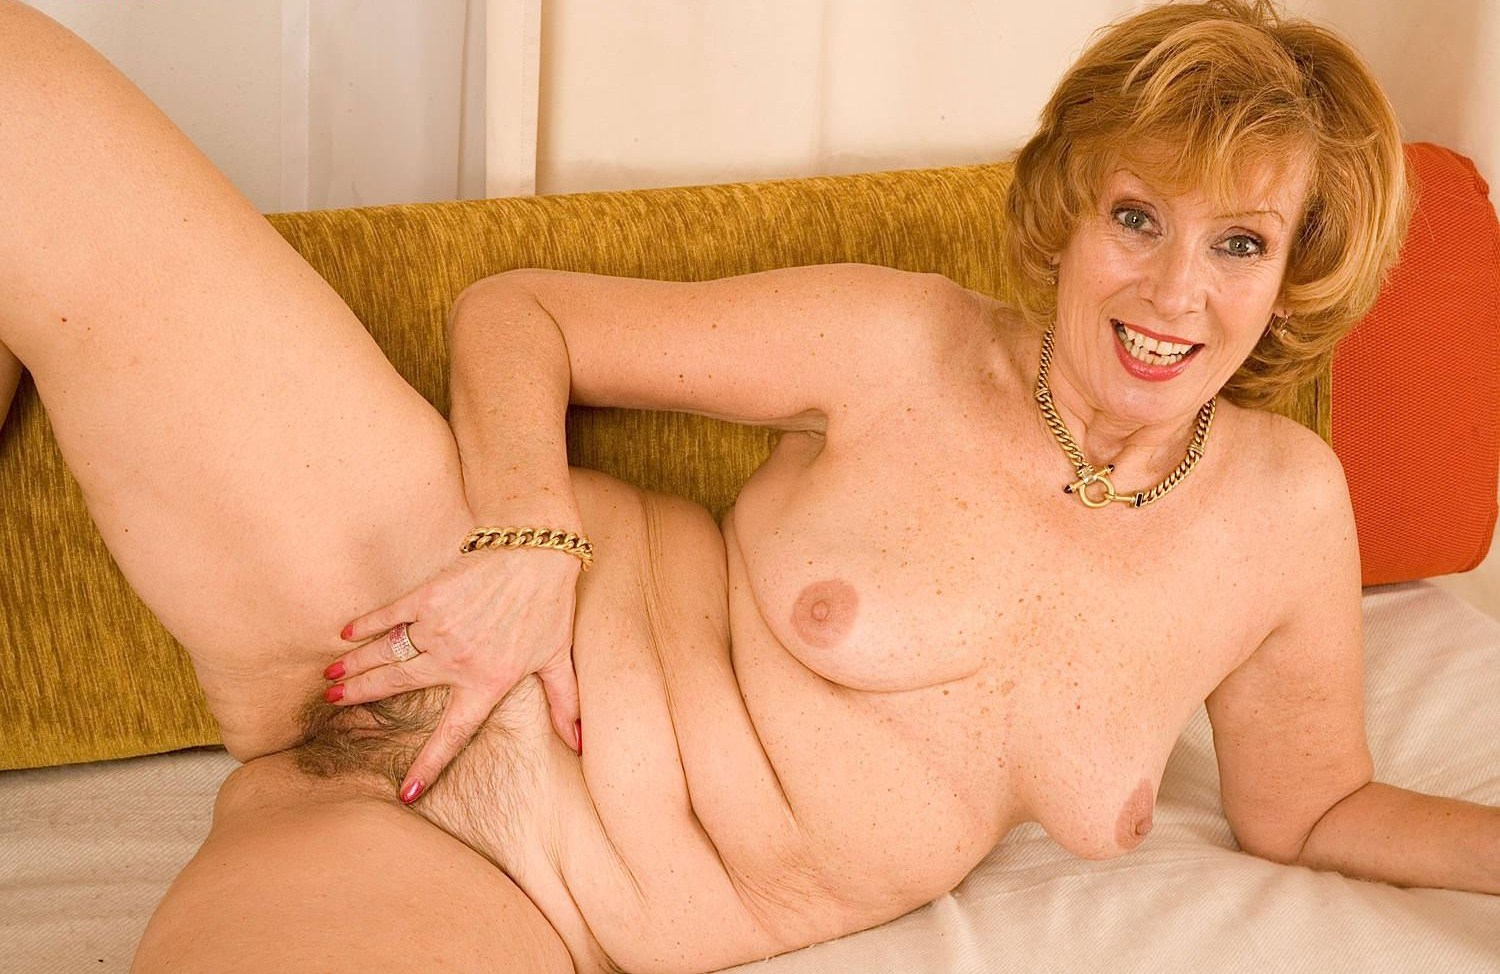 Hot 60 year old nude women and